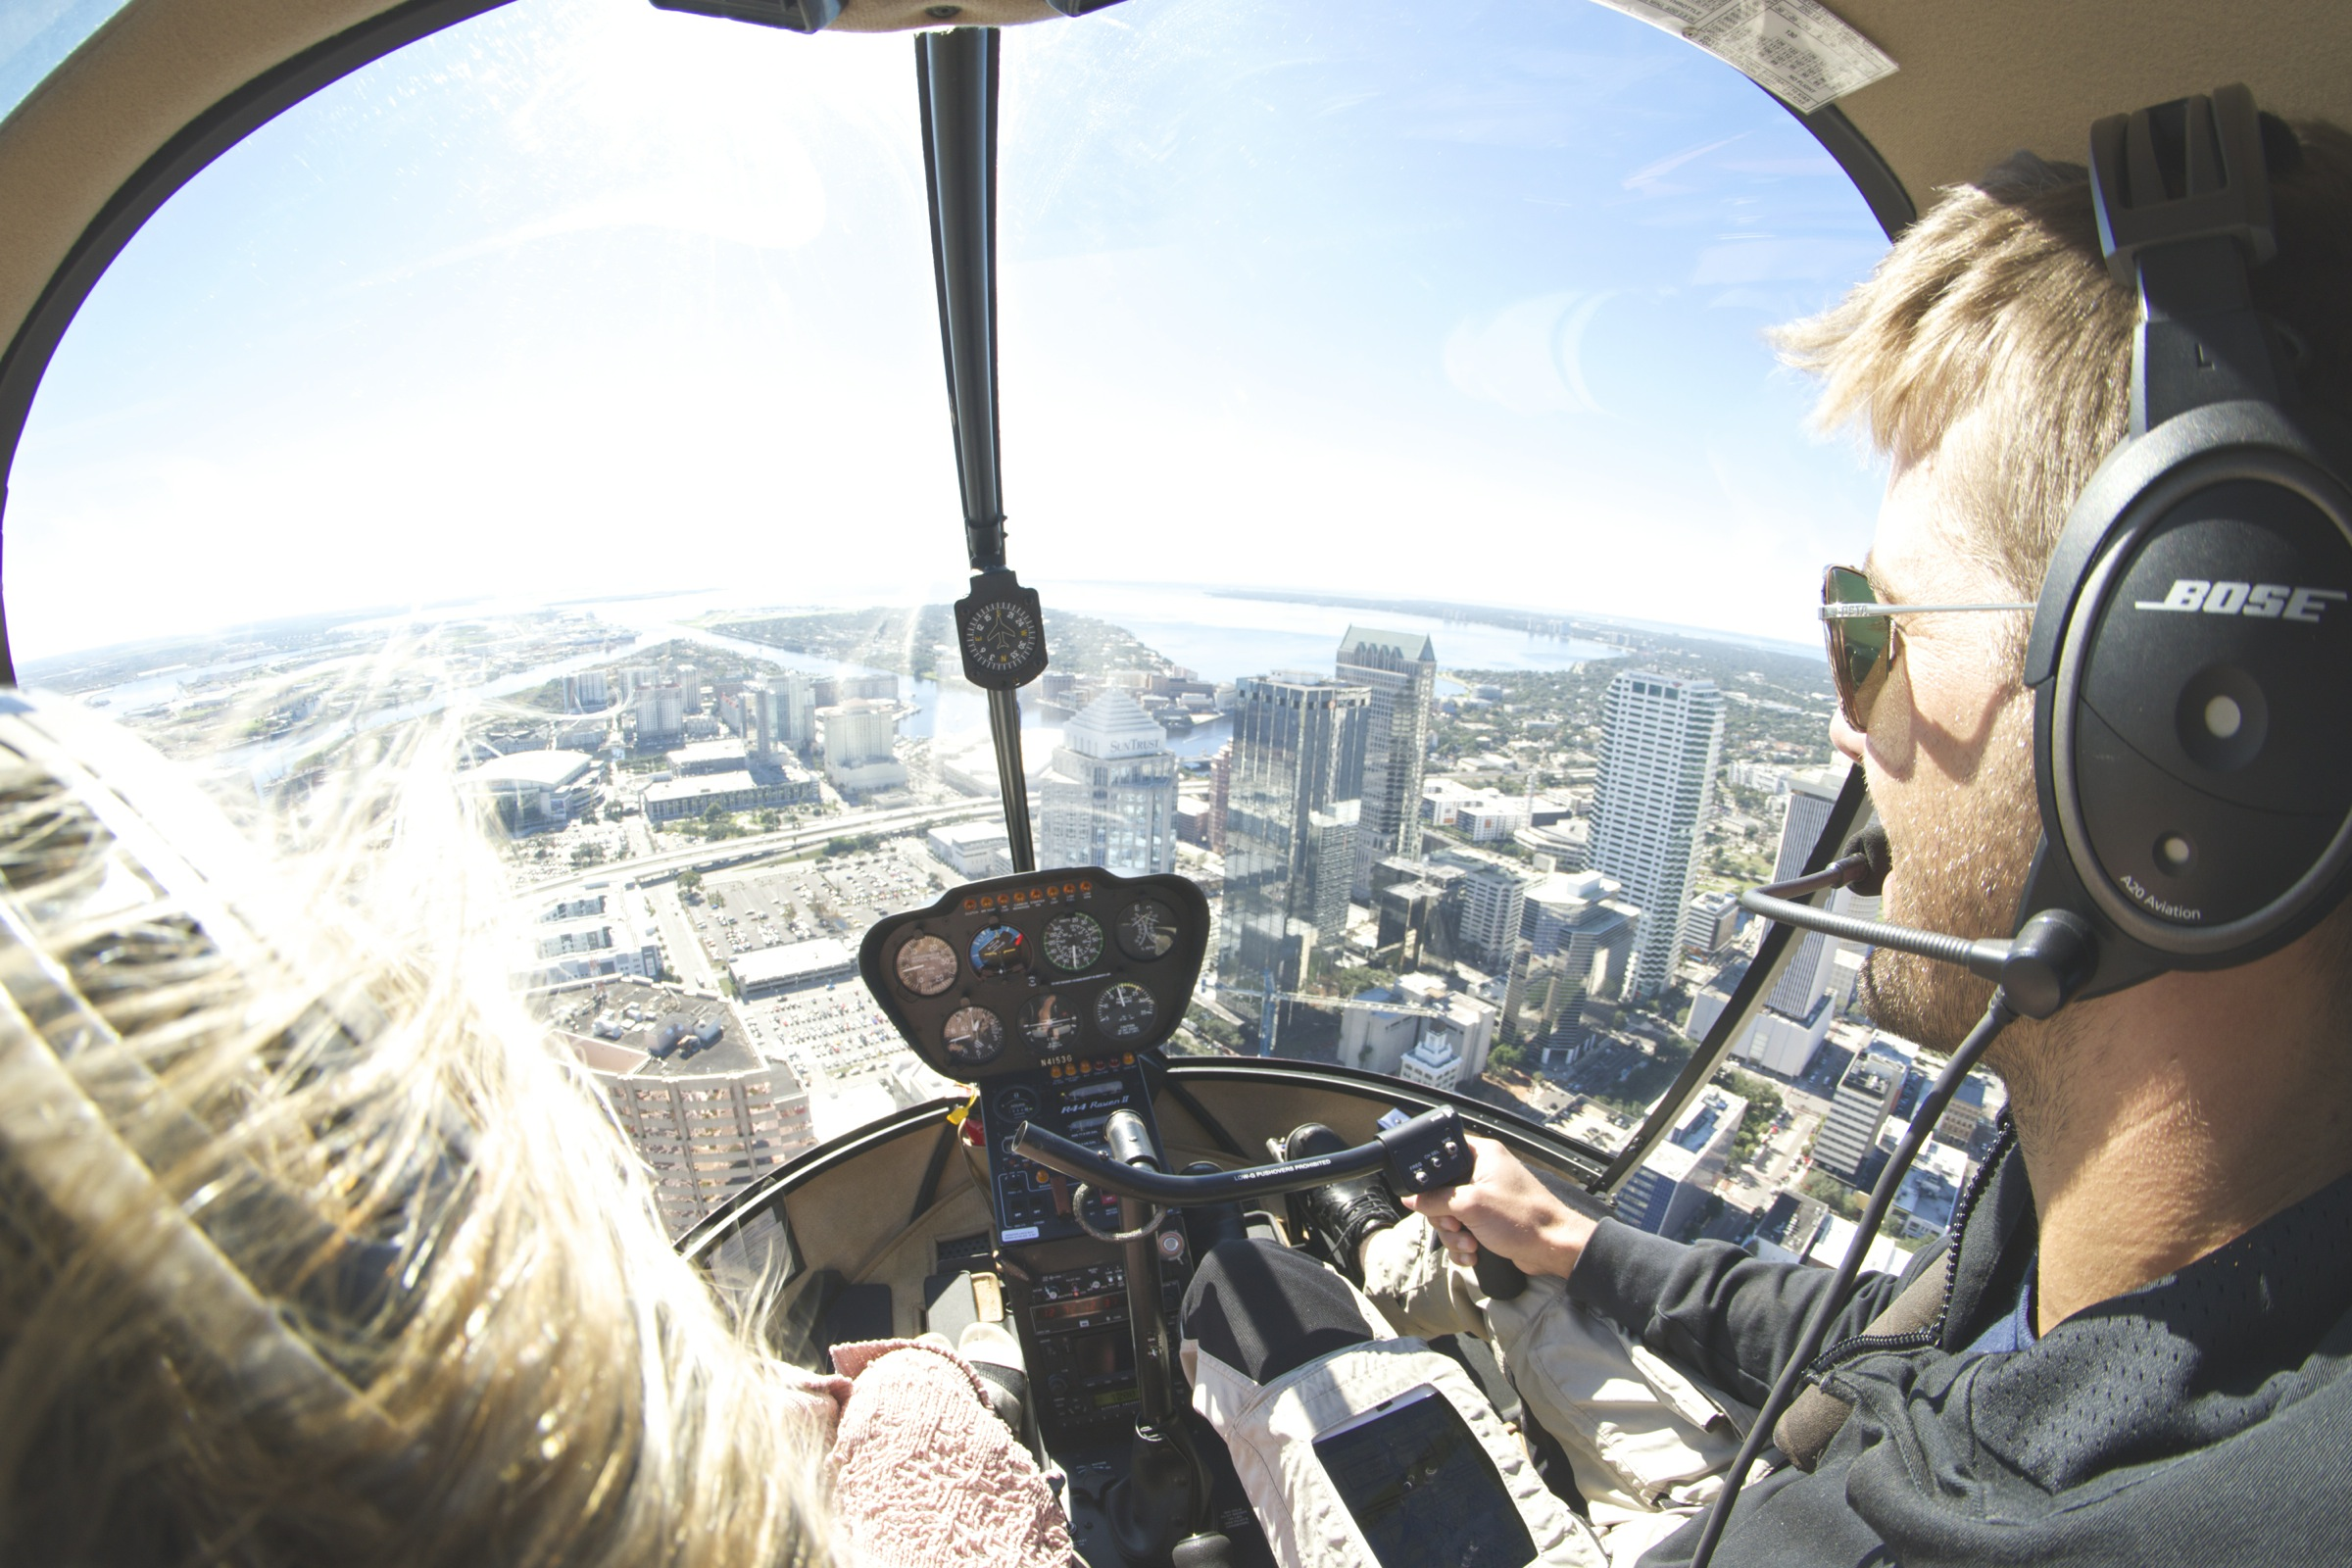 Flying in helicopter image